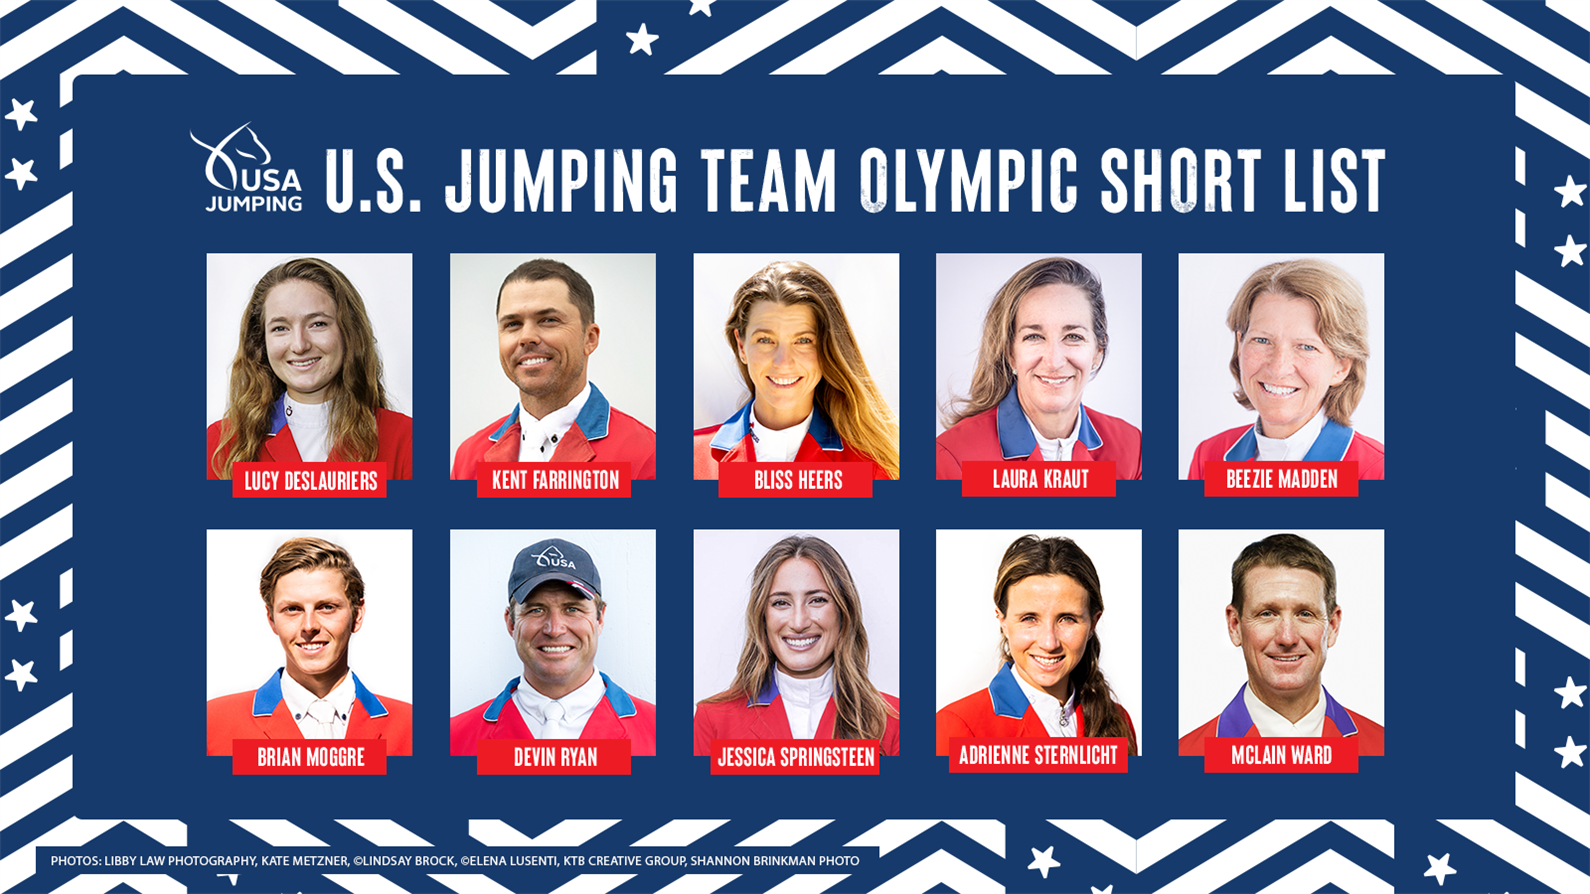 The US Jumping Team Short List for the 2020 Tokyo Olympics